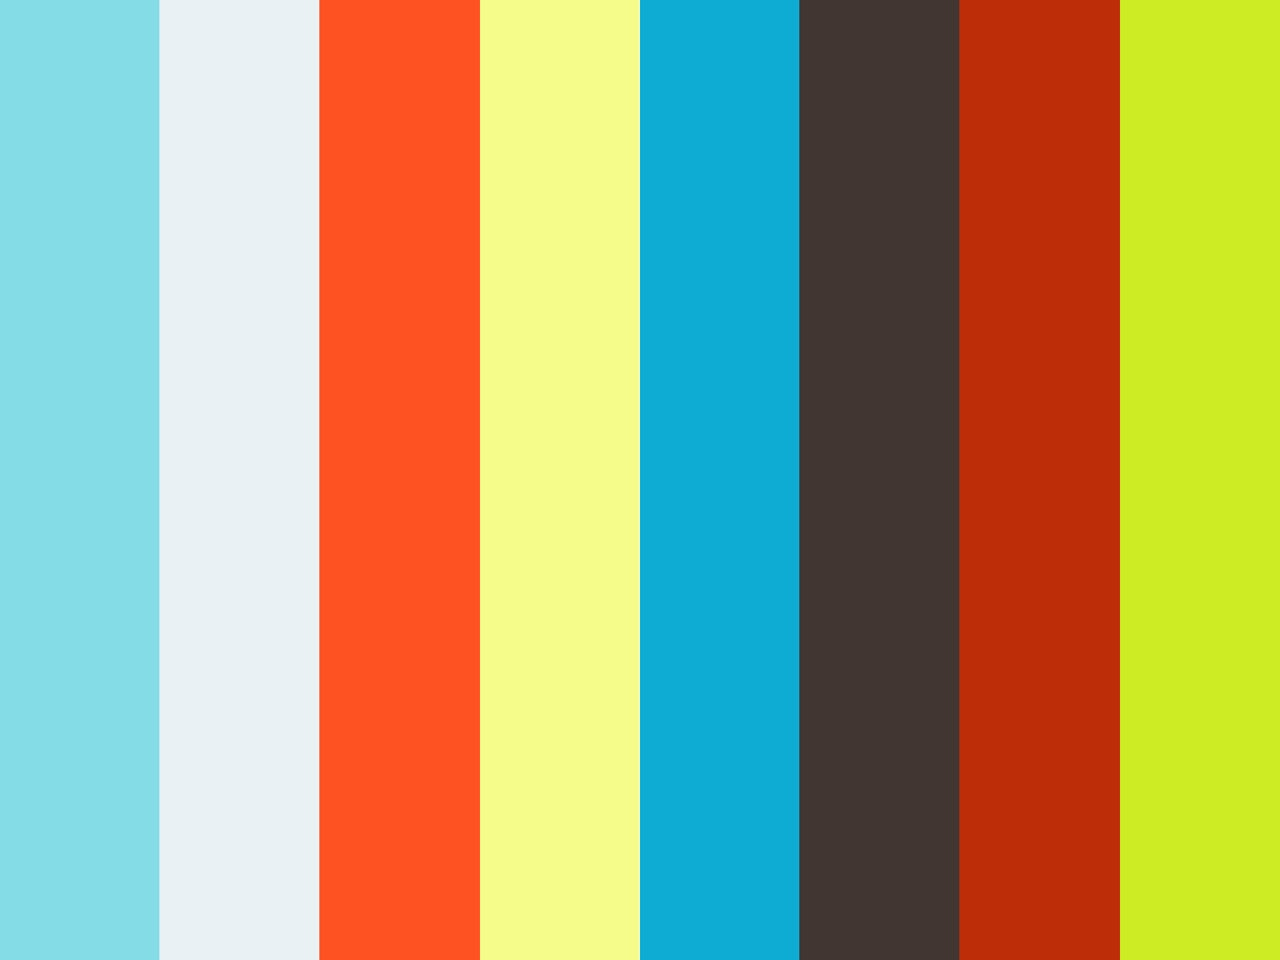 Medical Treatment Guidelines and Non-Acute Pain Management in New York